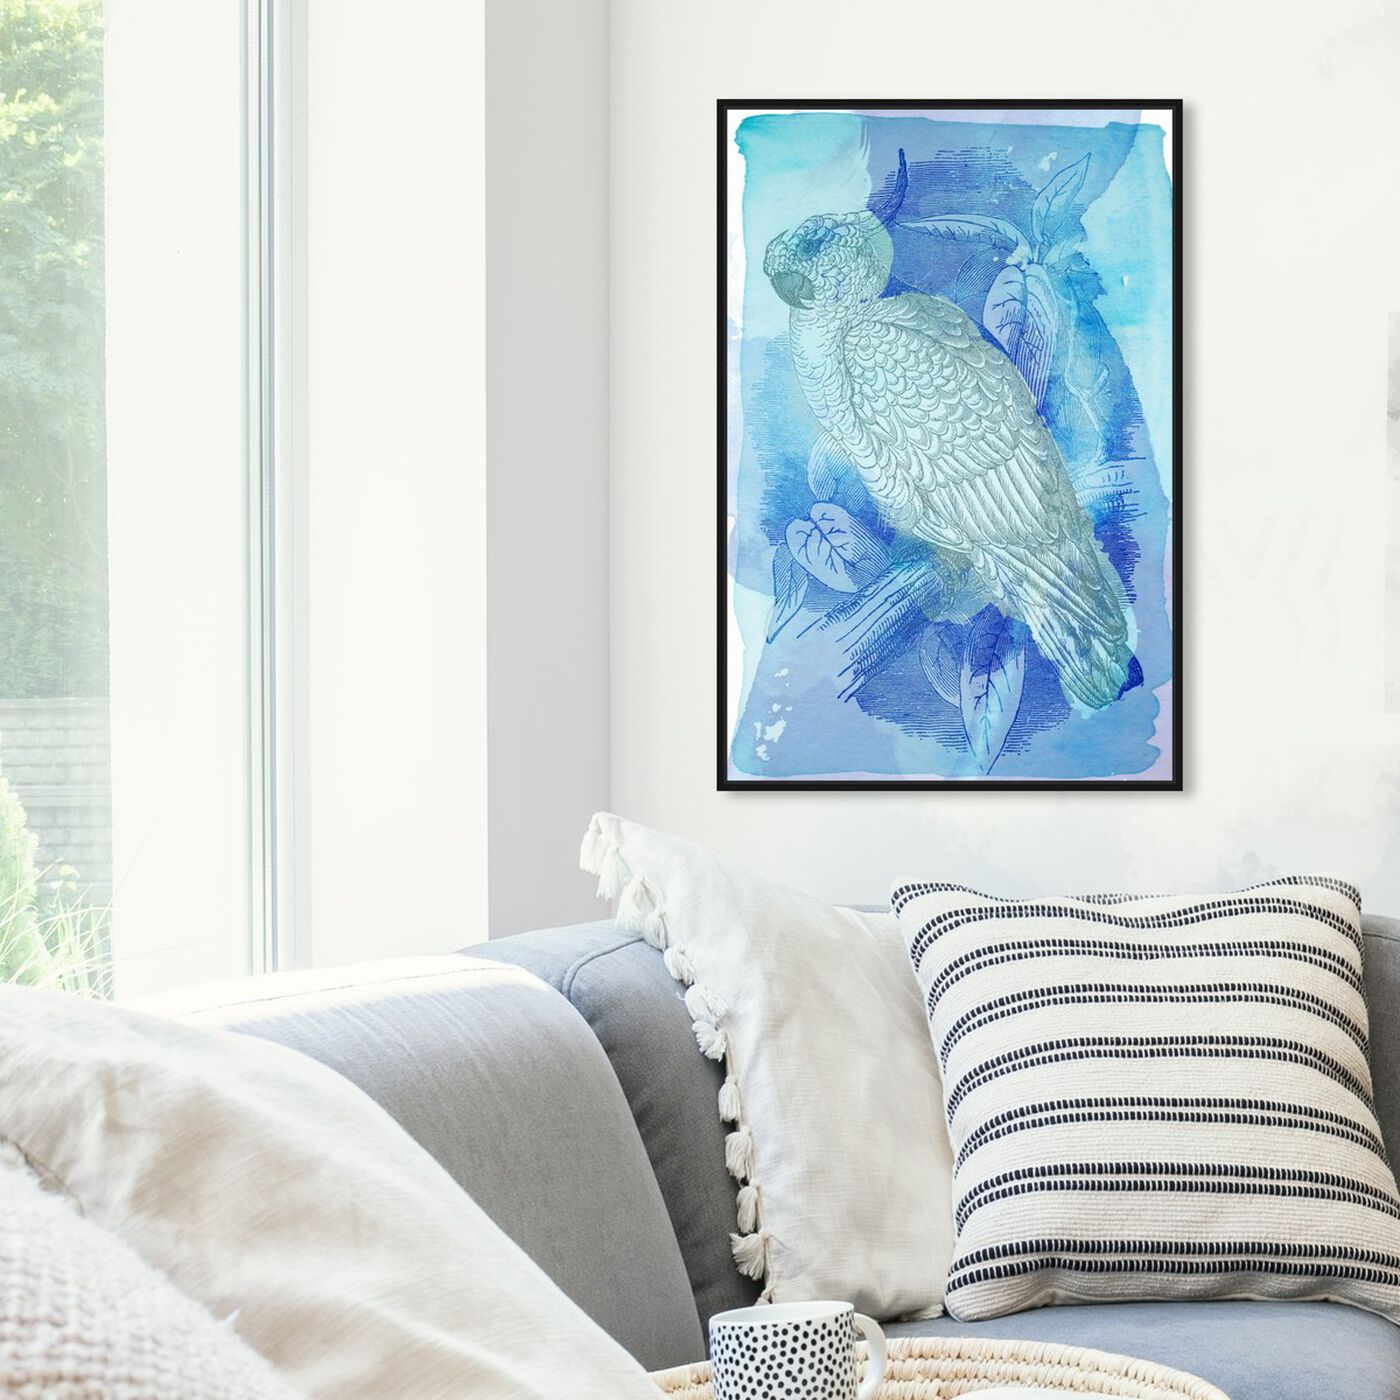 Hanging view of Fly and Fade featuring animals and birds art.